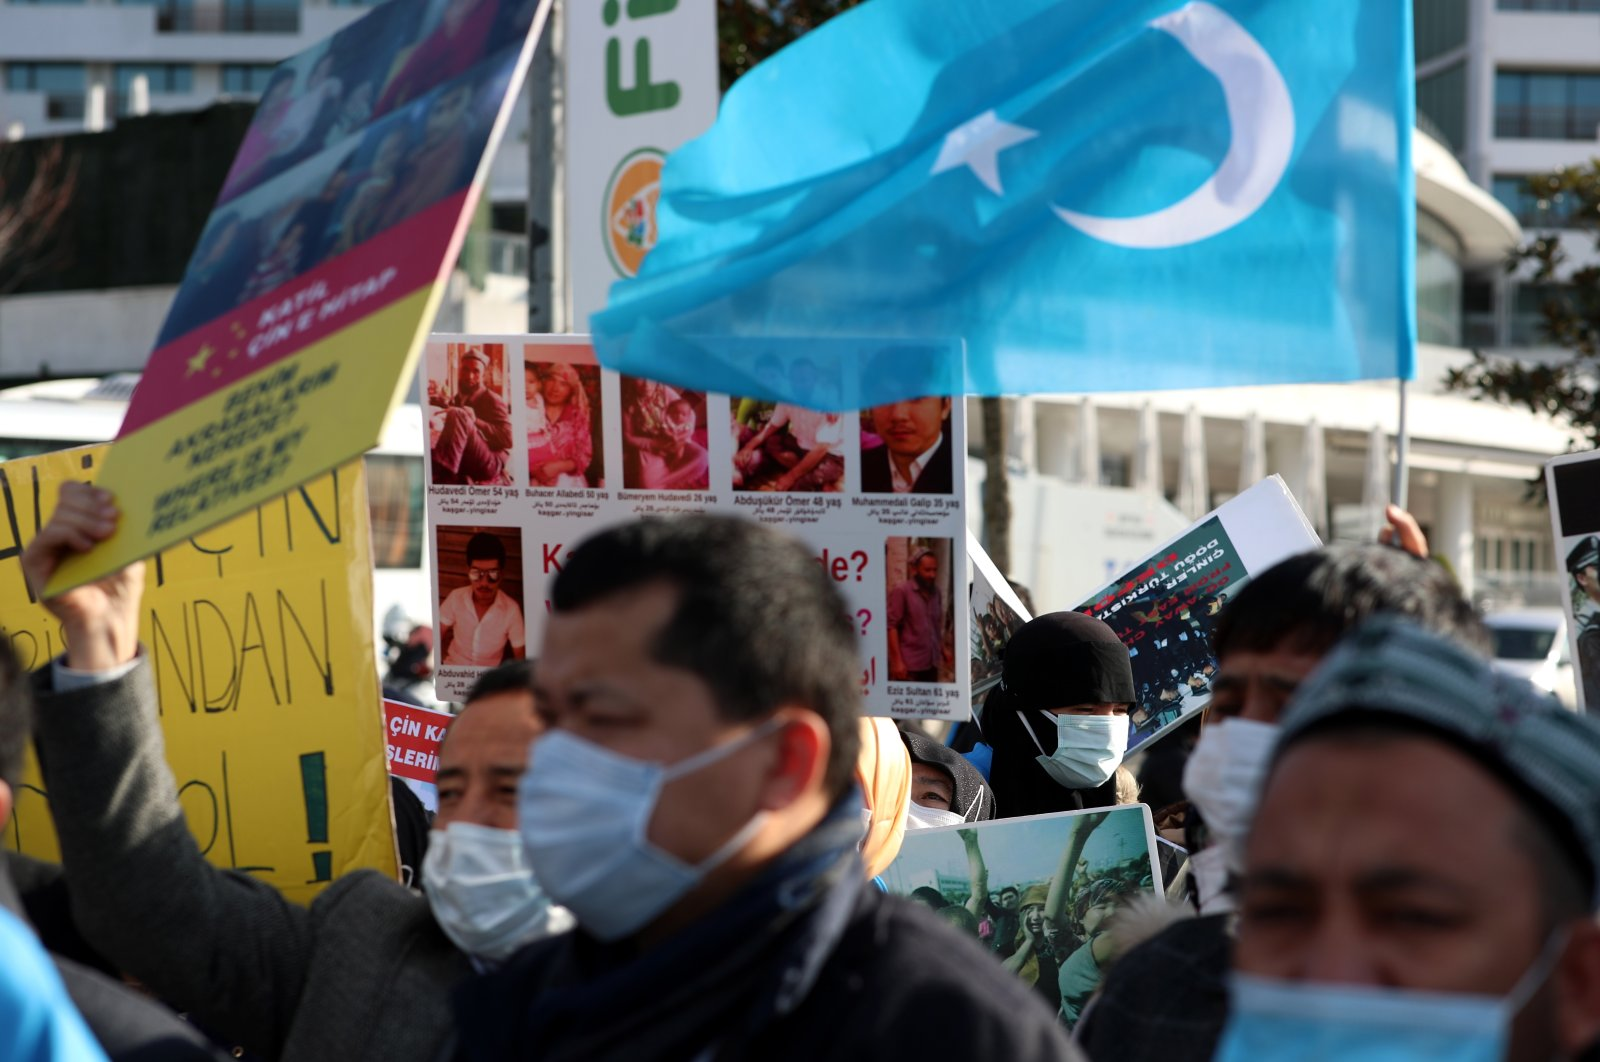 Uyghur protestors who have not heard from their families living in Xinjiang hold placards and Uyghur flags during a protest against China, near the Chinese consulate-general in Istanbul, Turkey, Feb. 9, 2021 (EPA Photo)